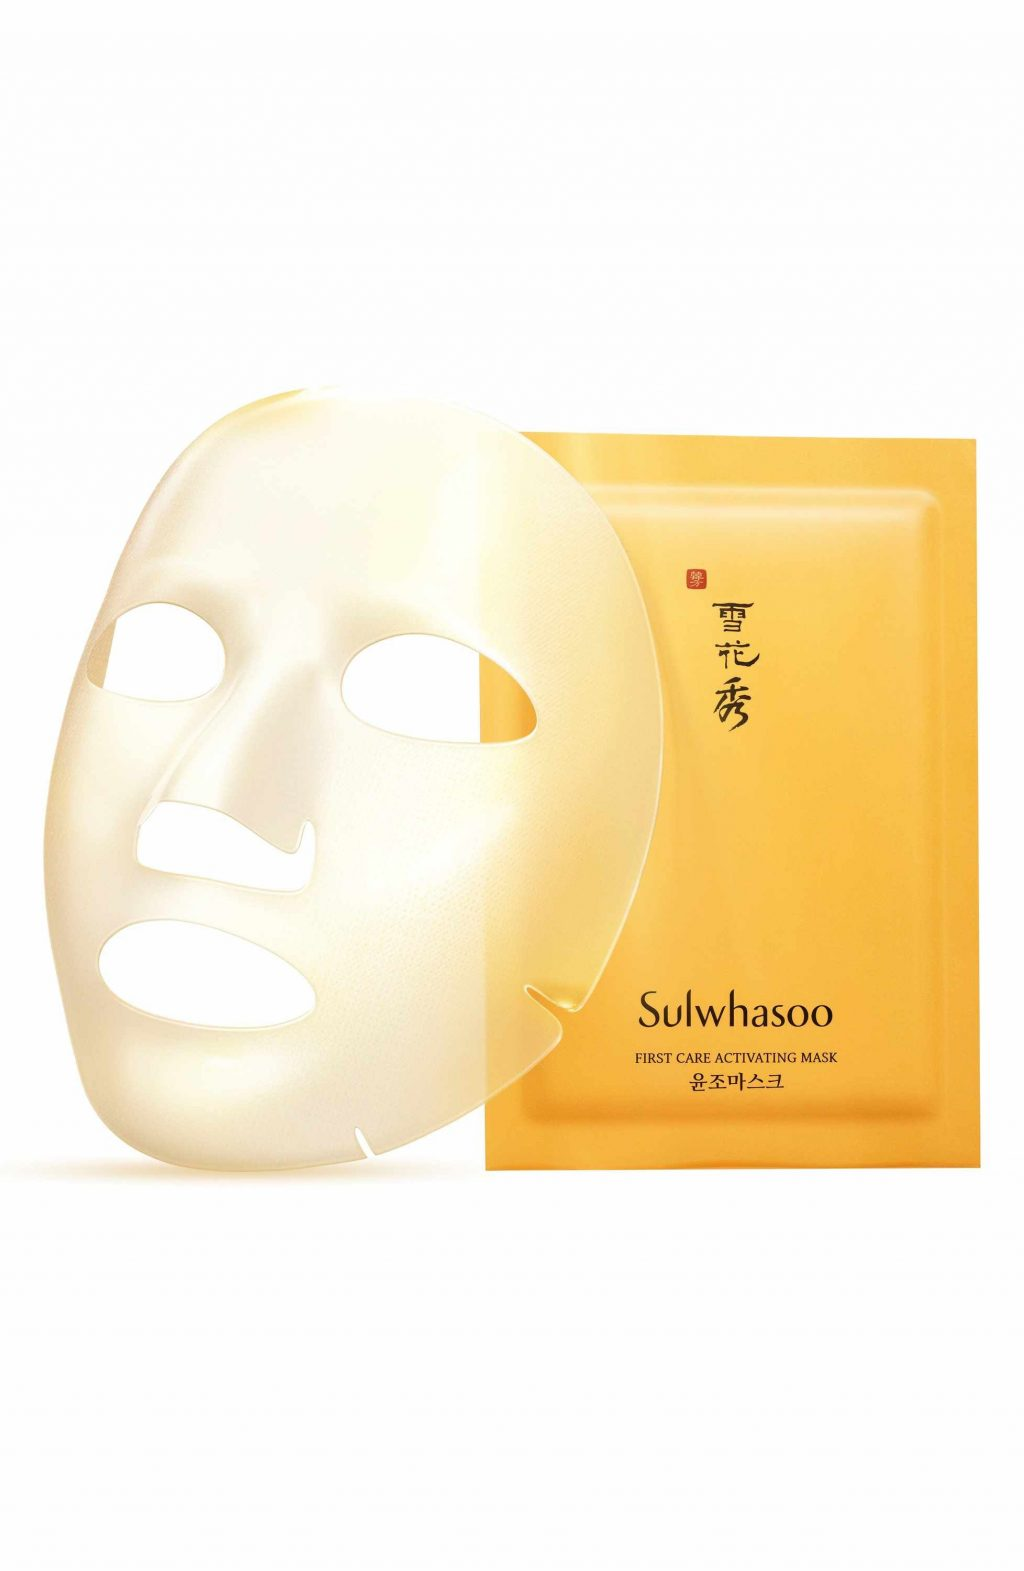 mặt nạ dưỡng da Sulwhasoo First Care Activating Sheet Mask